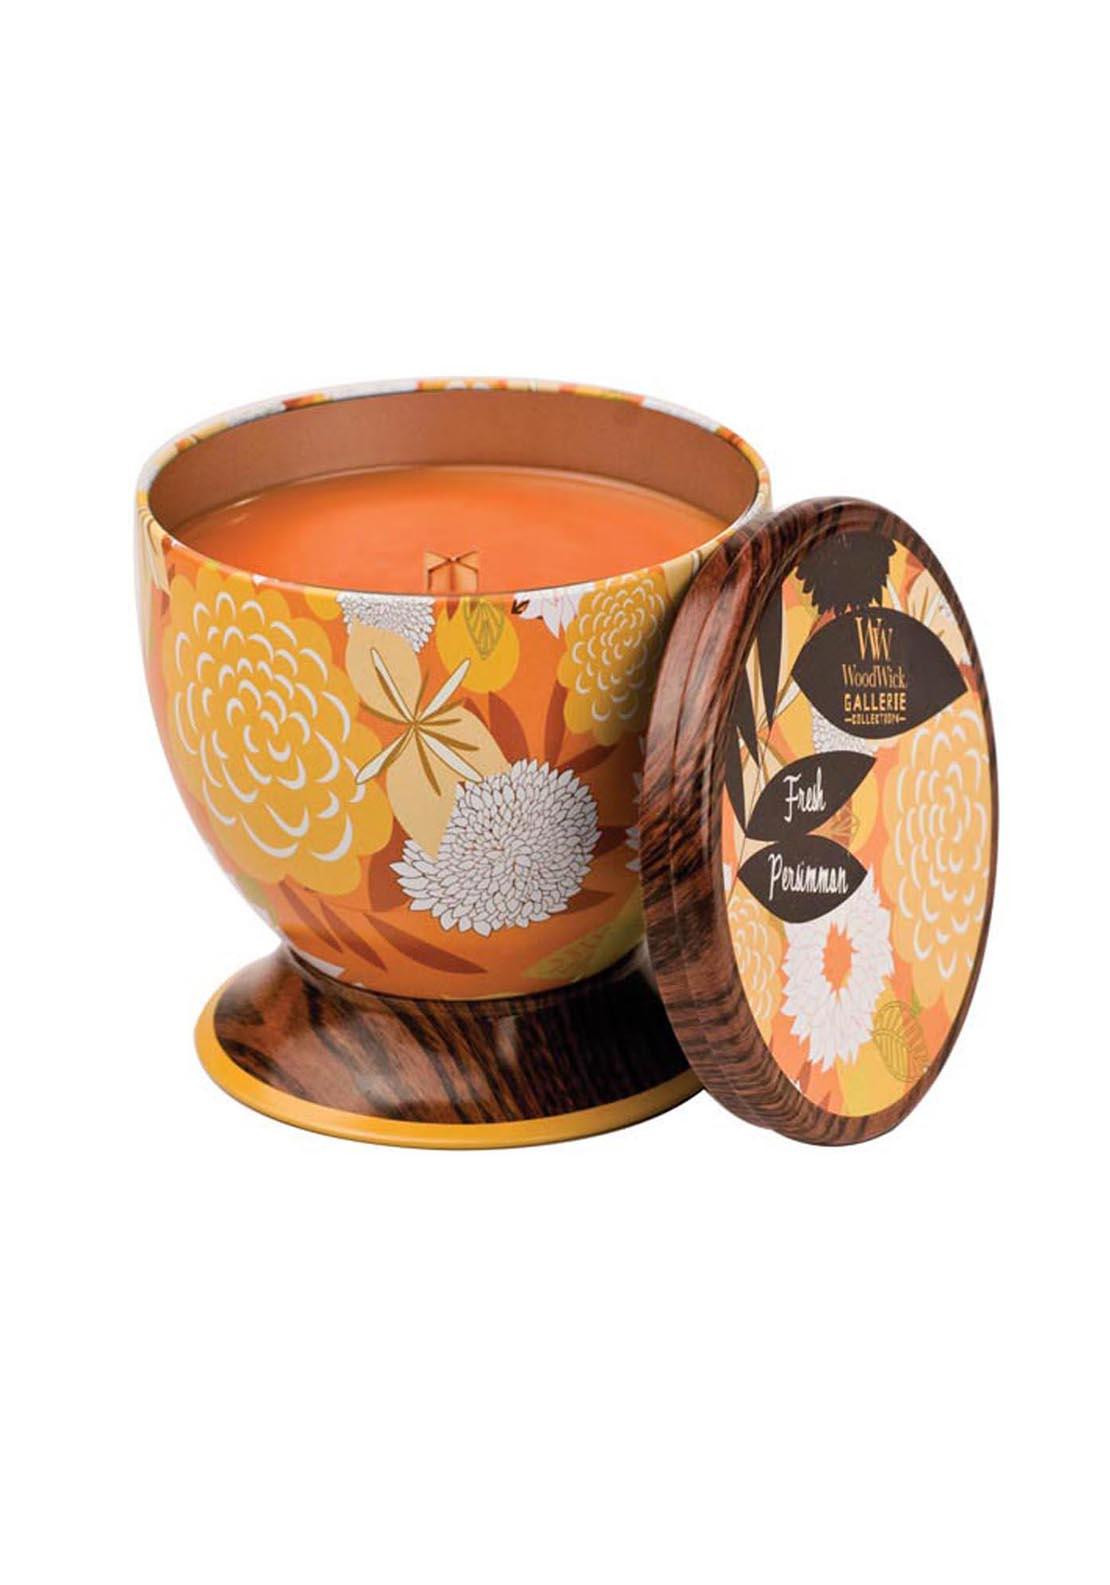 Woodwick Gallerie Collection, Scented Candle, Fresh Persimmon